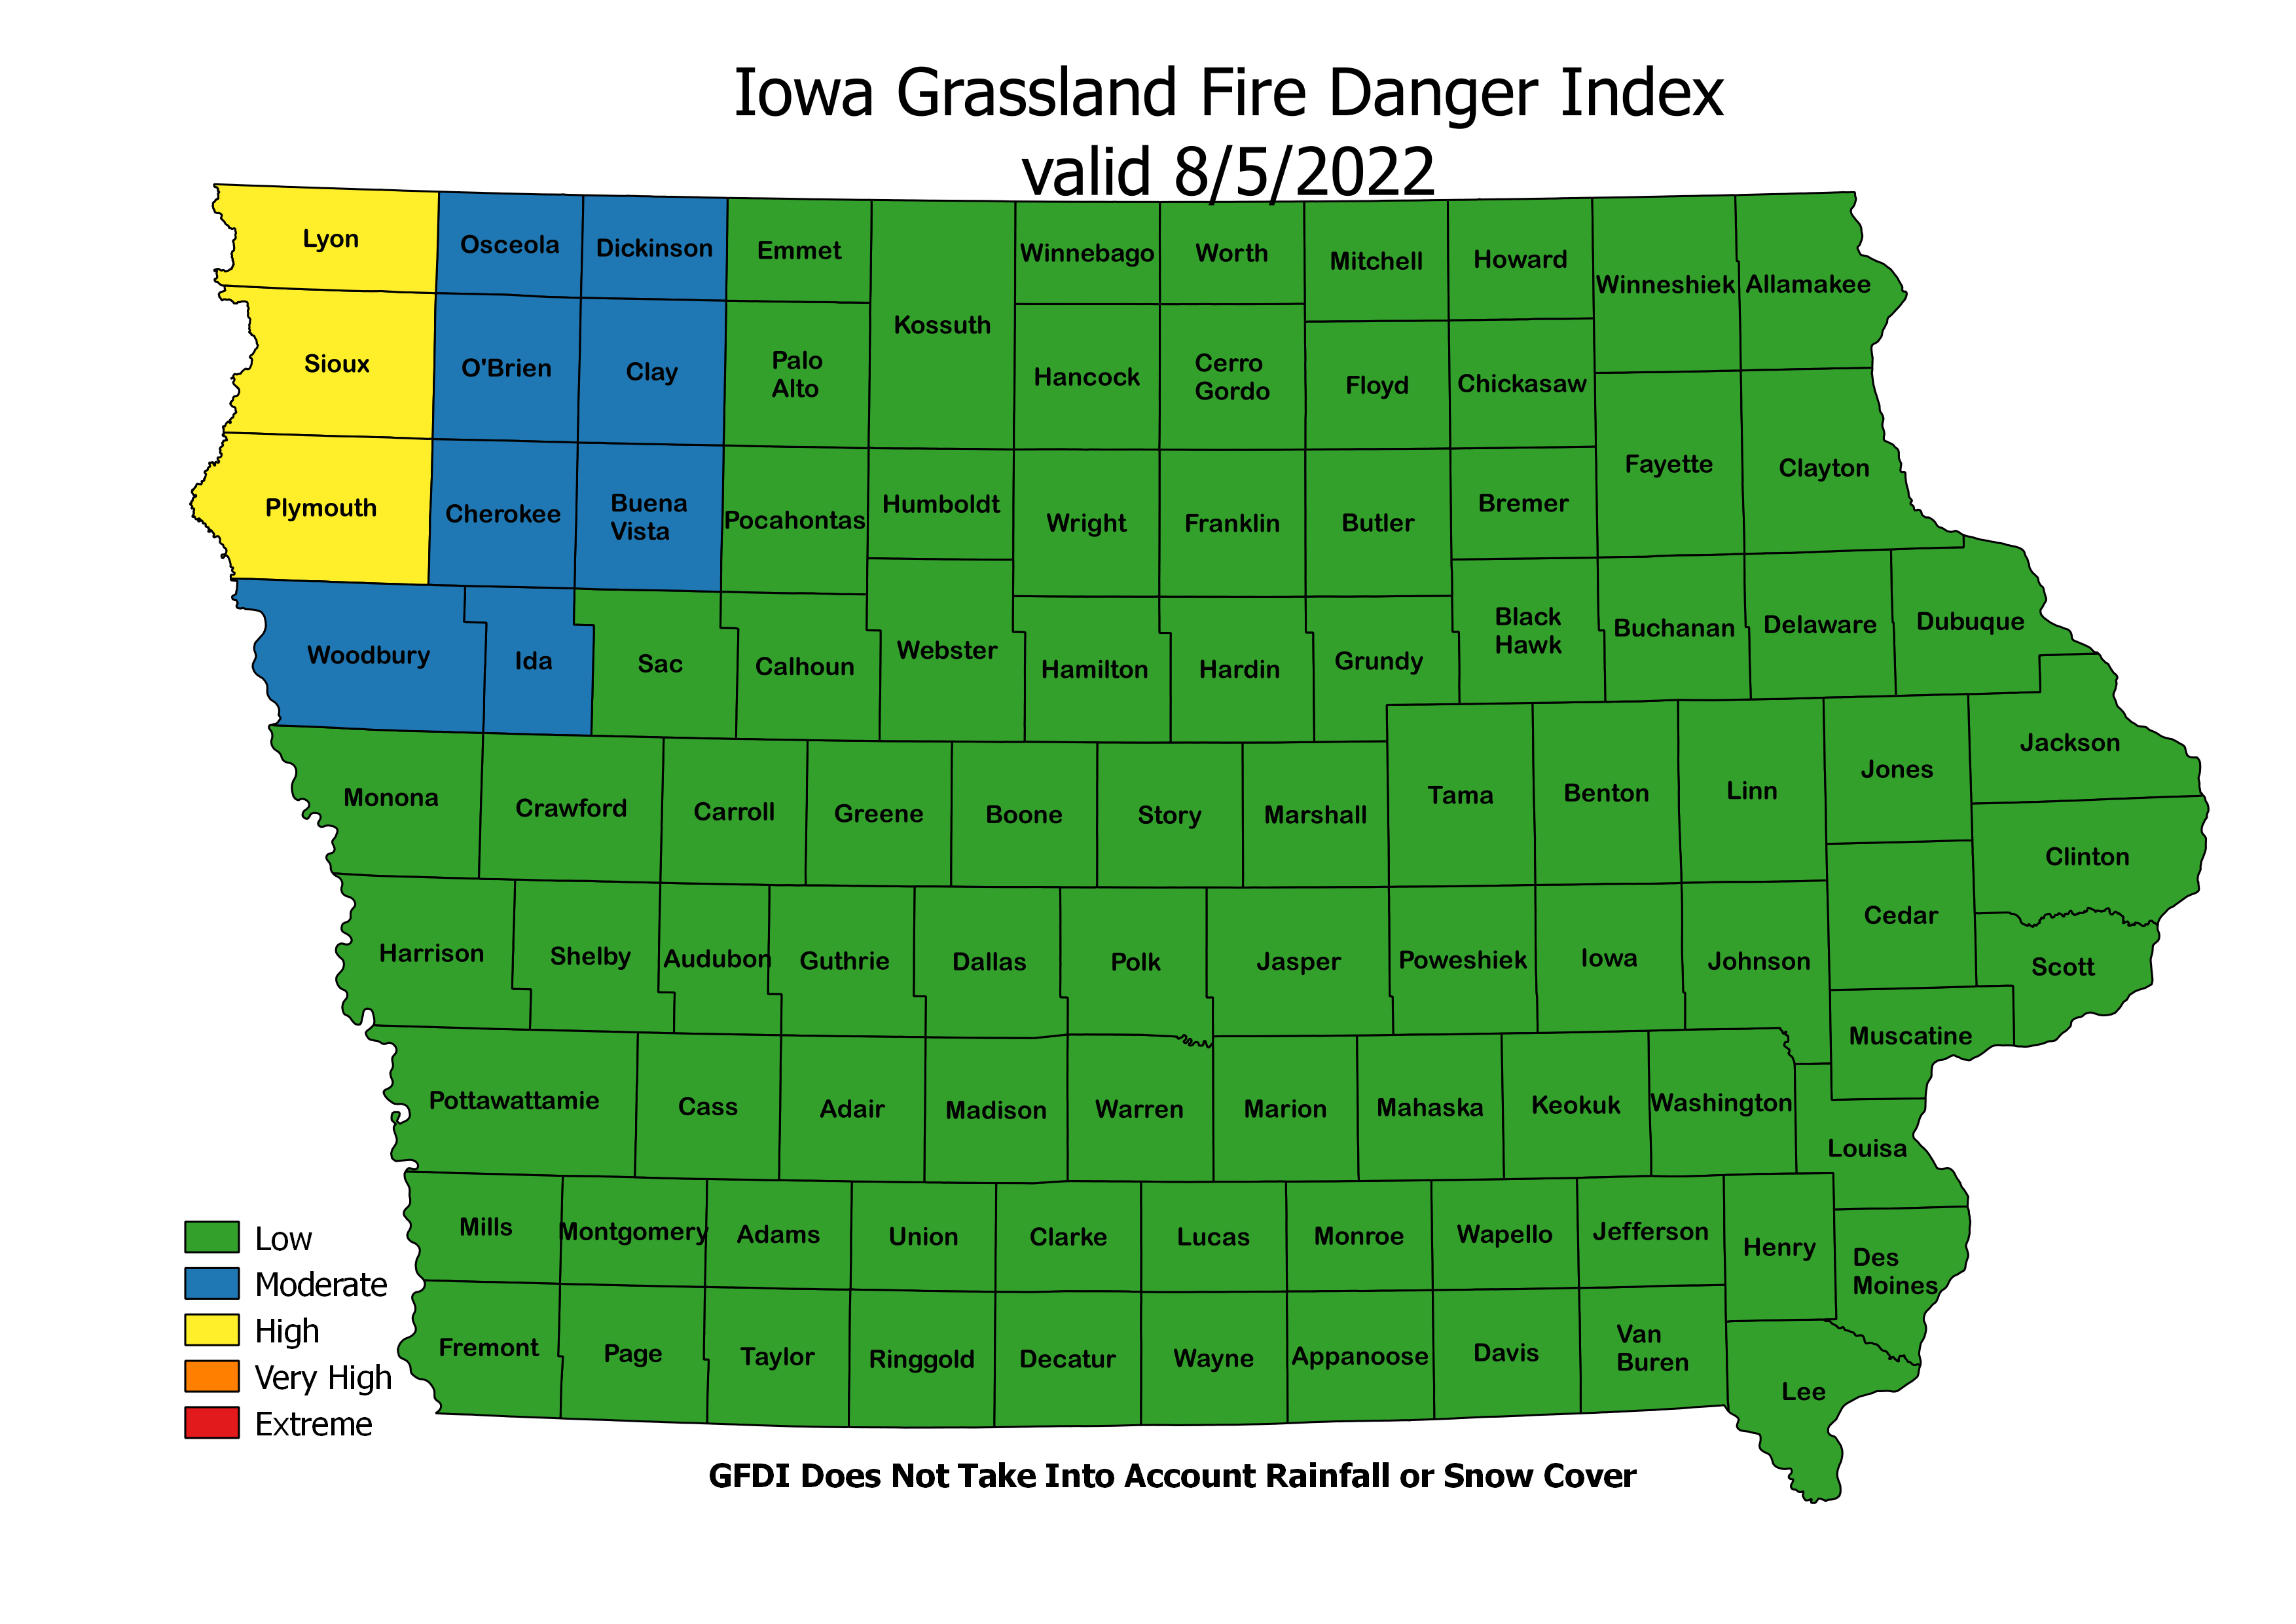 Iowa Forecast Grassland Fire Danger Index image